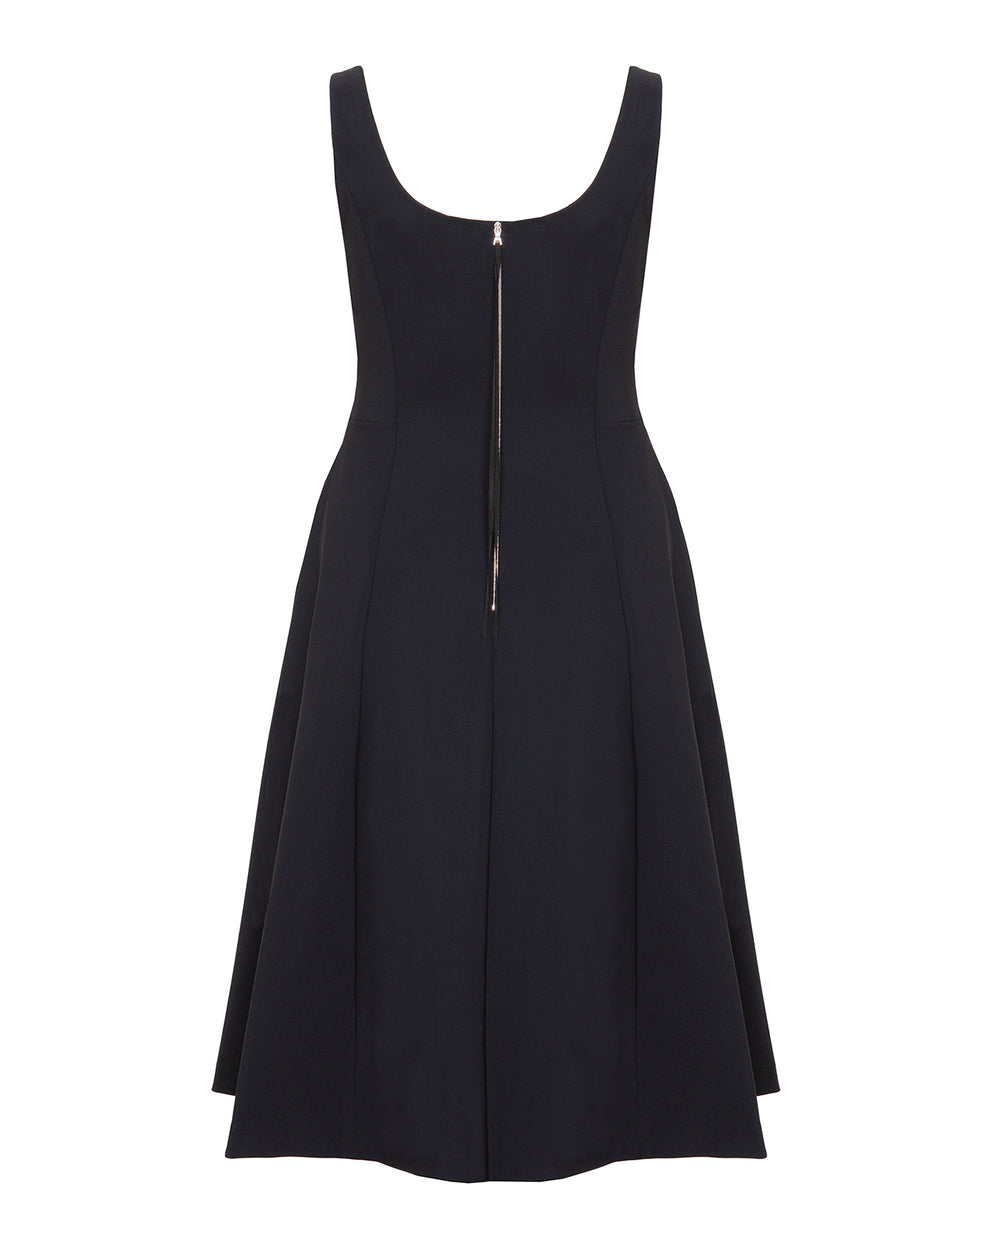 Bonded Neoprene Scoop Neck Flare Dress